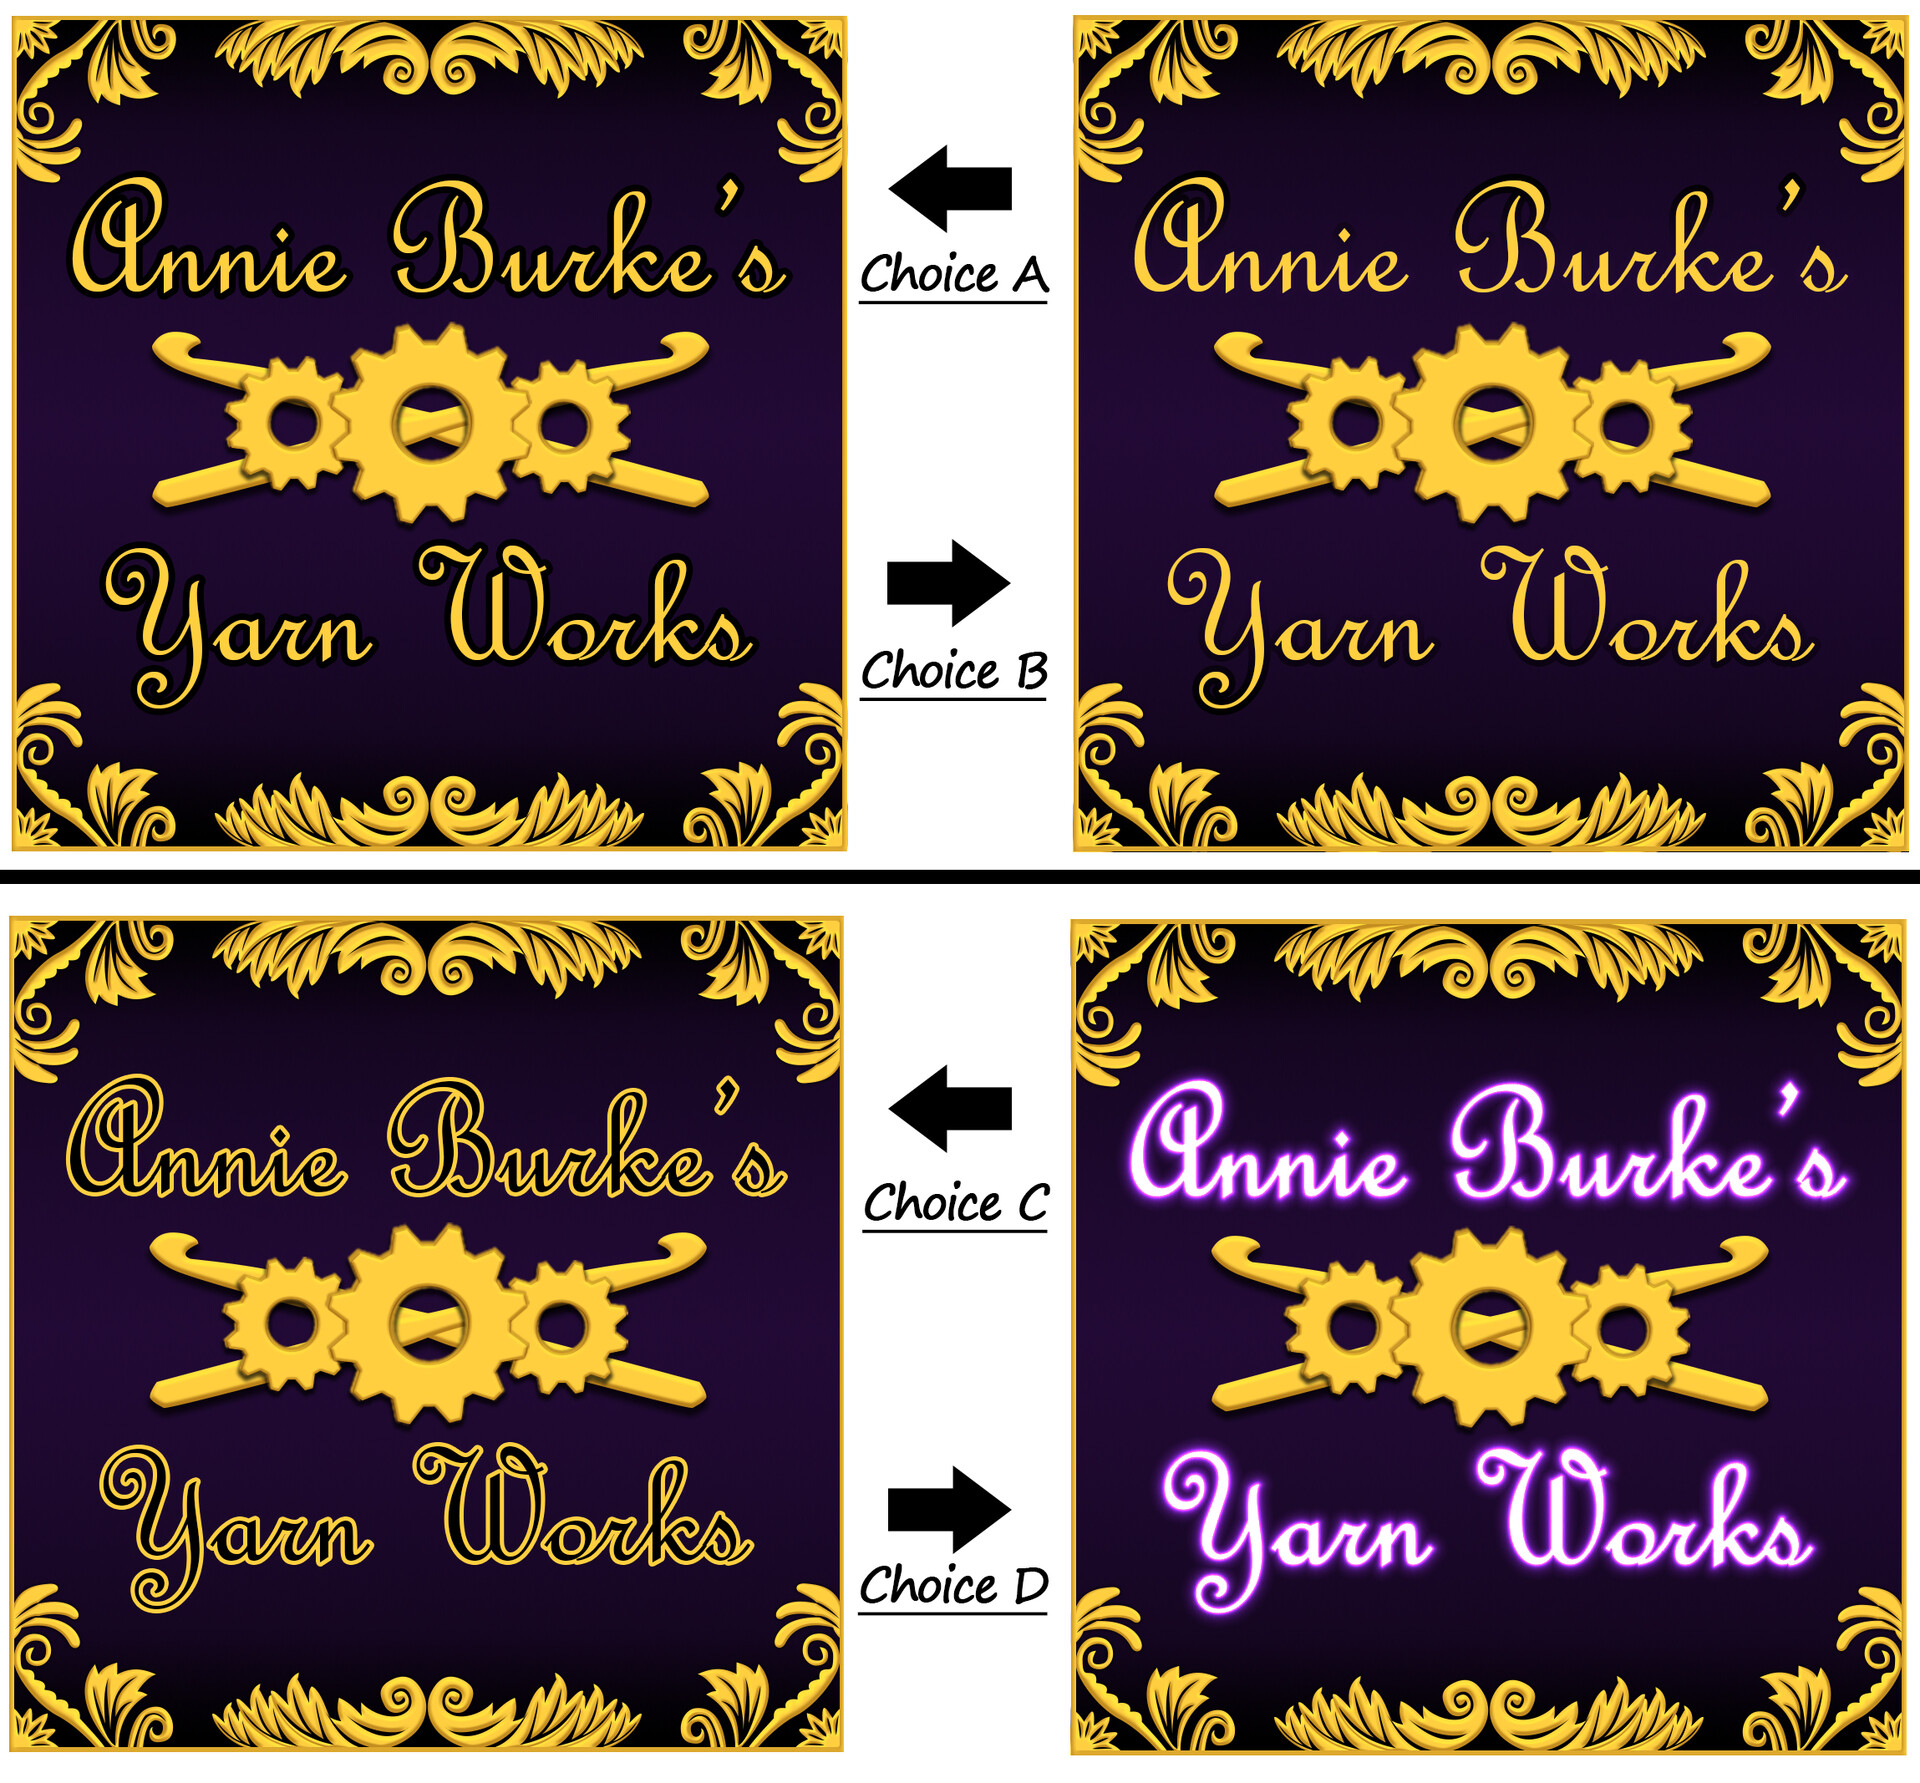 Various iterations of the receipt banner (last)